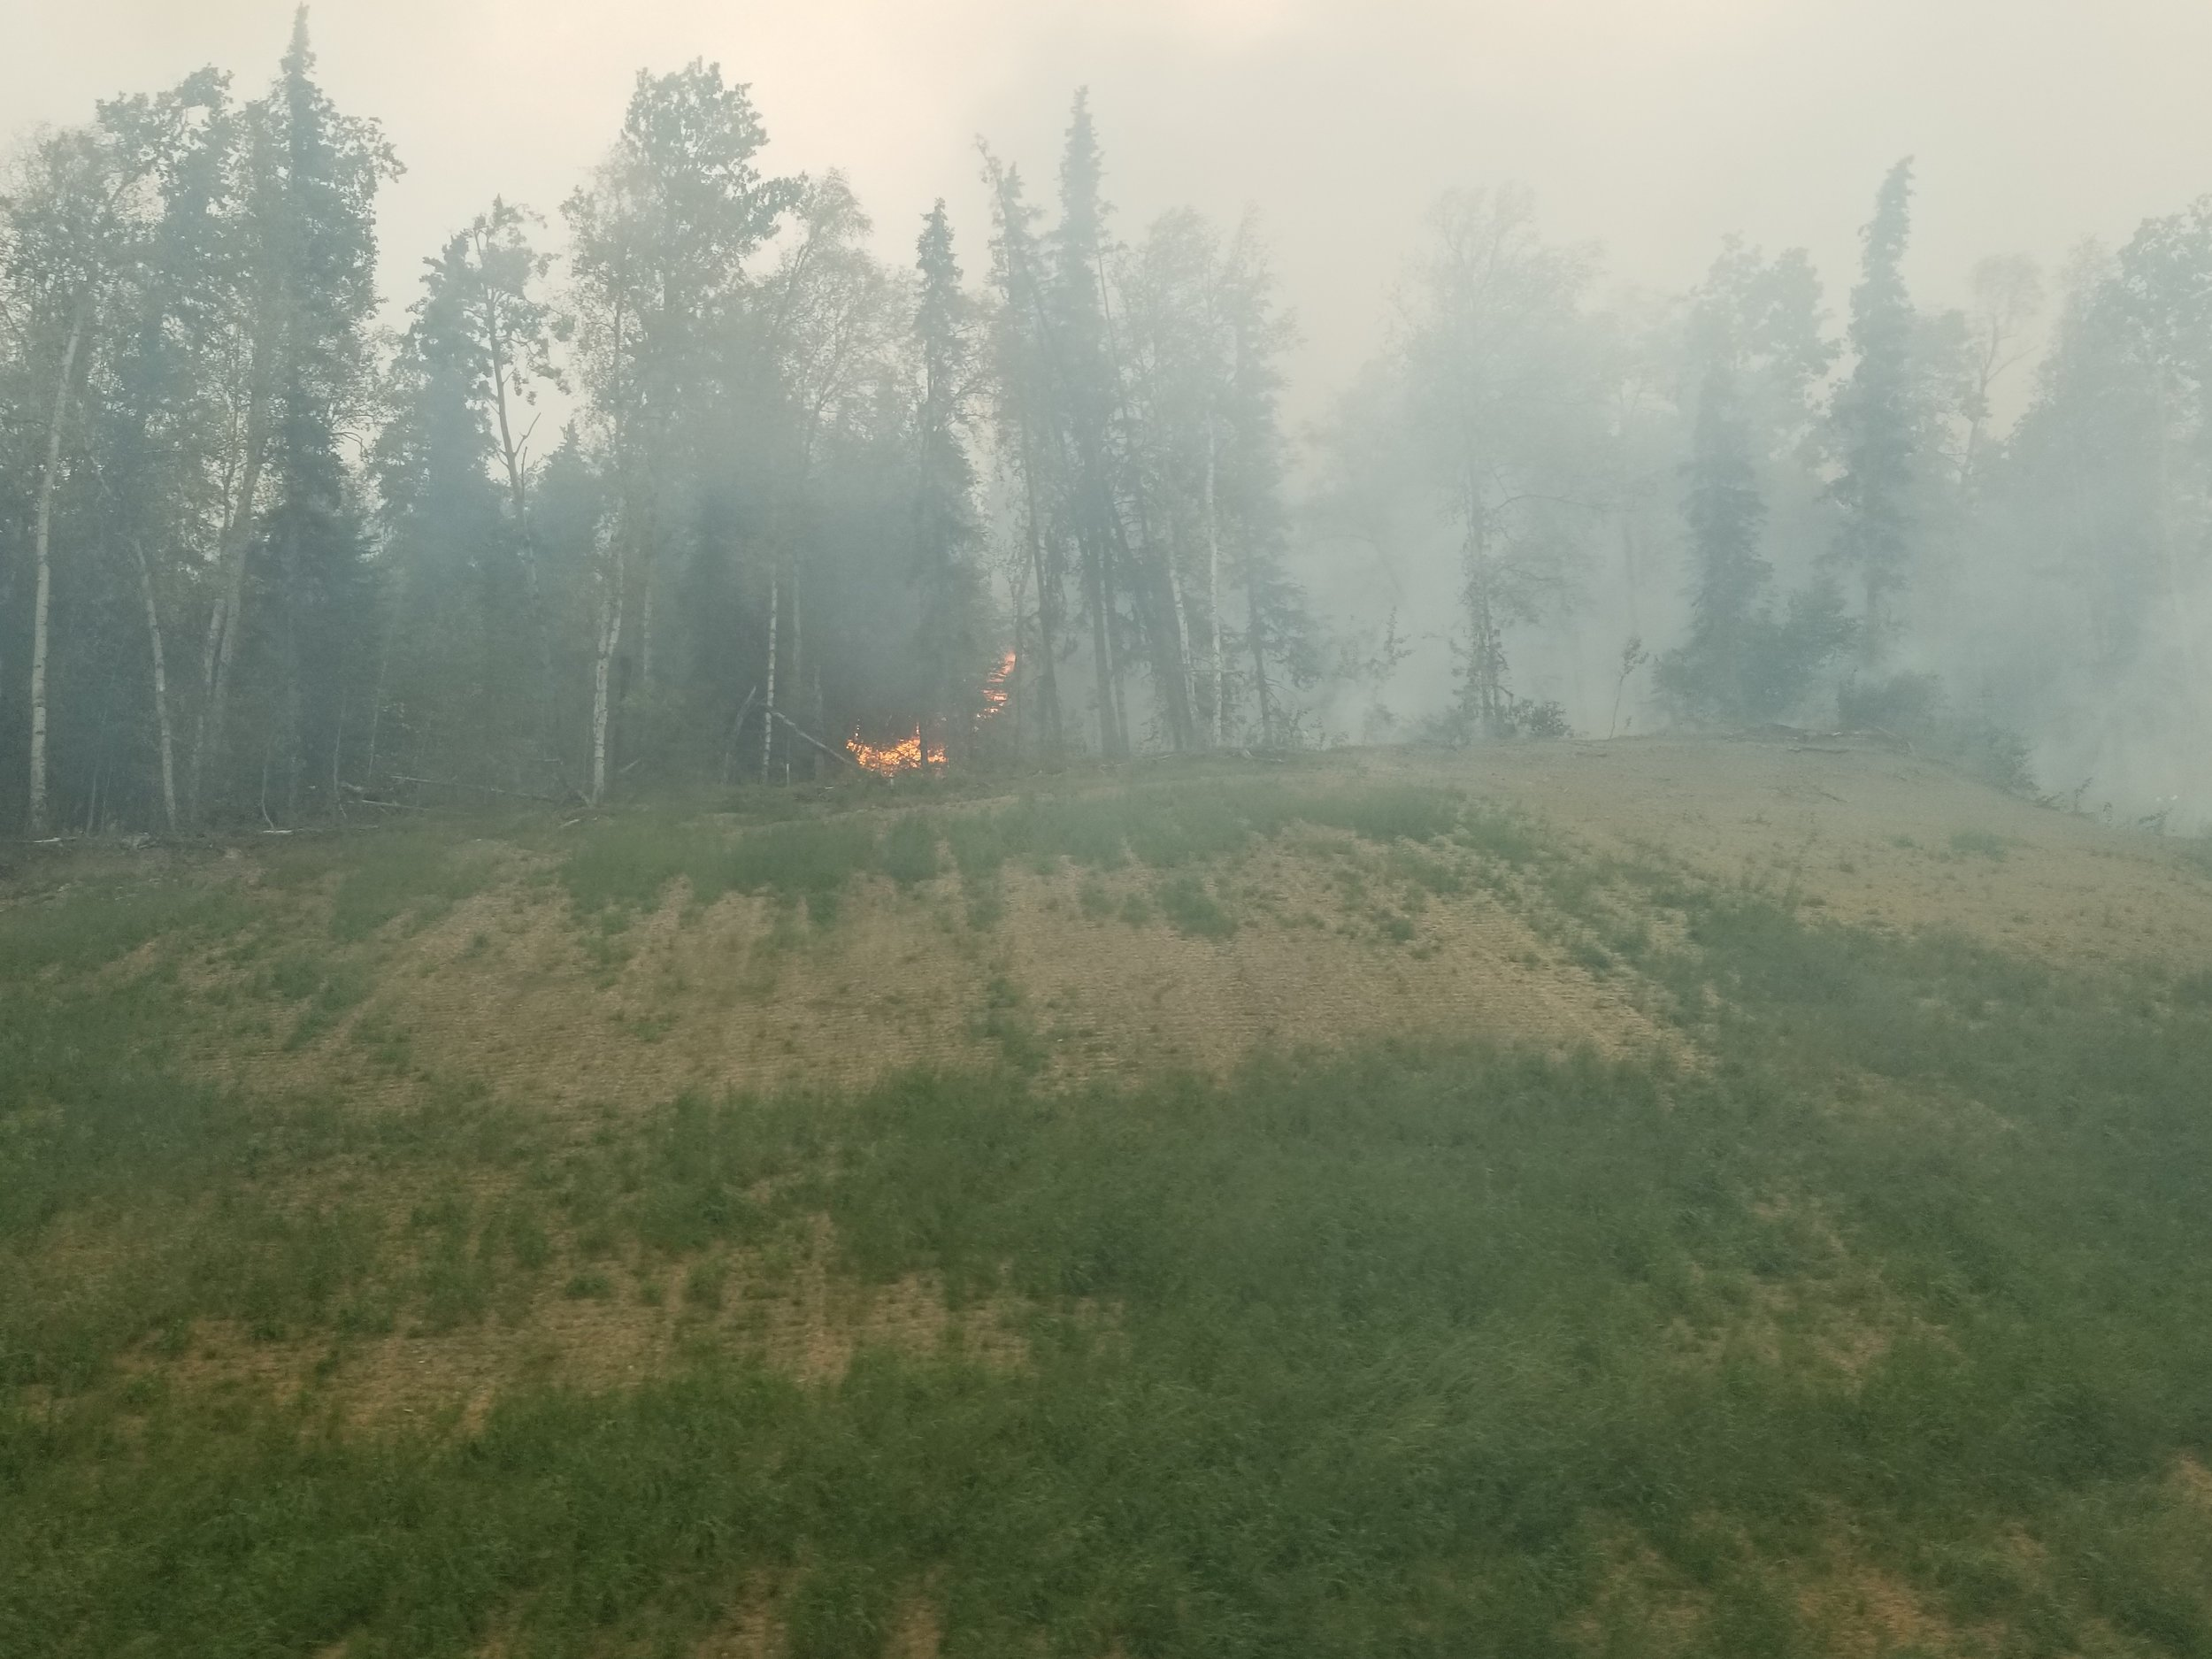 The Swan lake Fire as it approaches the road near Jean Lake on 8/18/19.